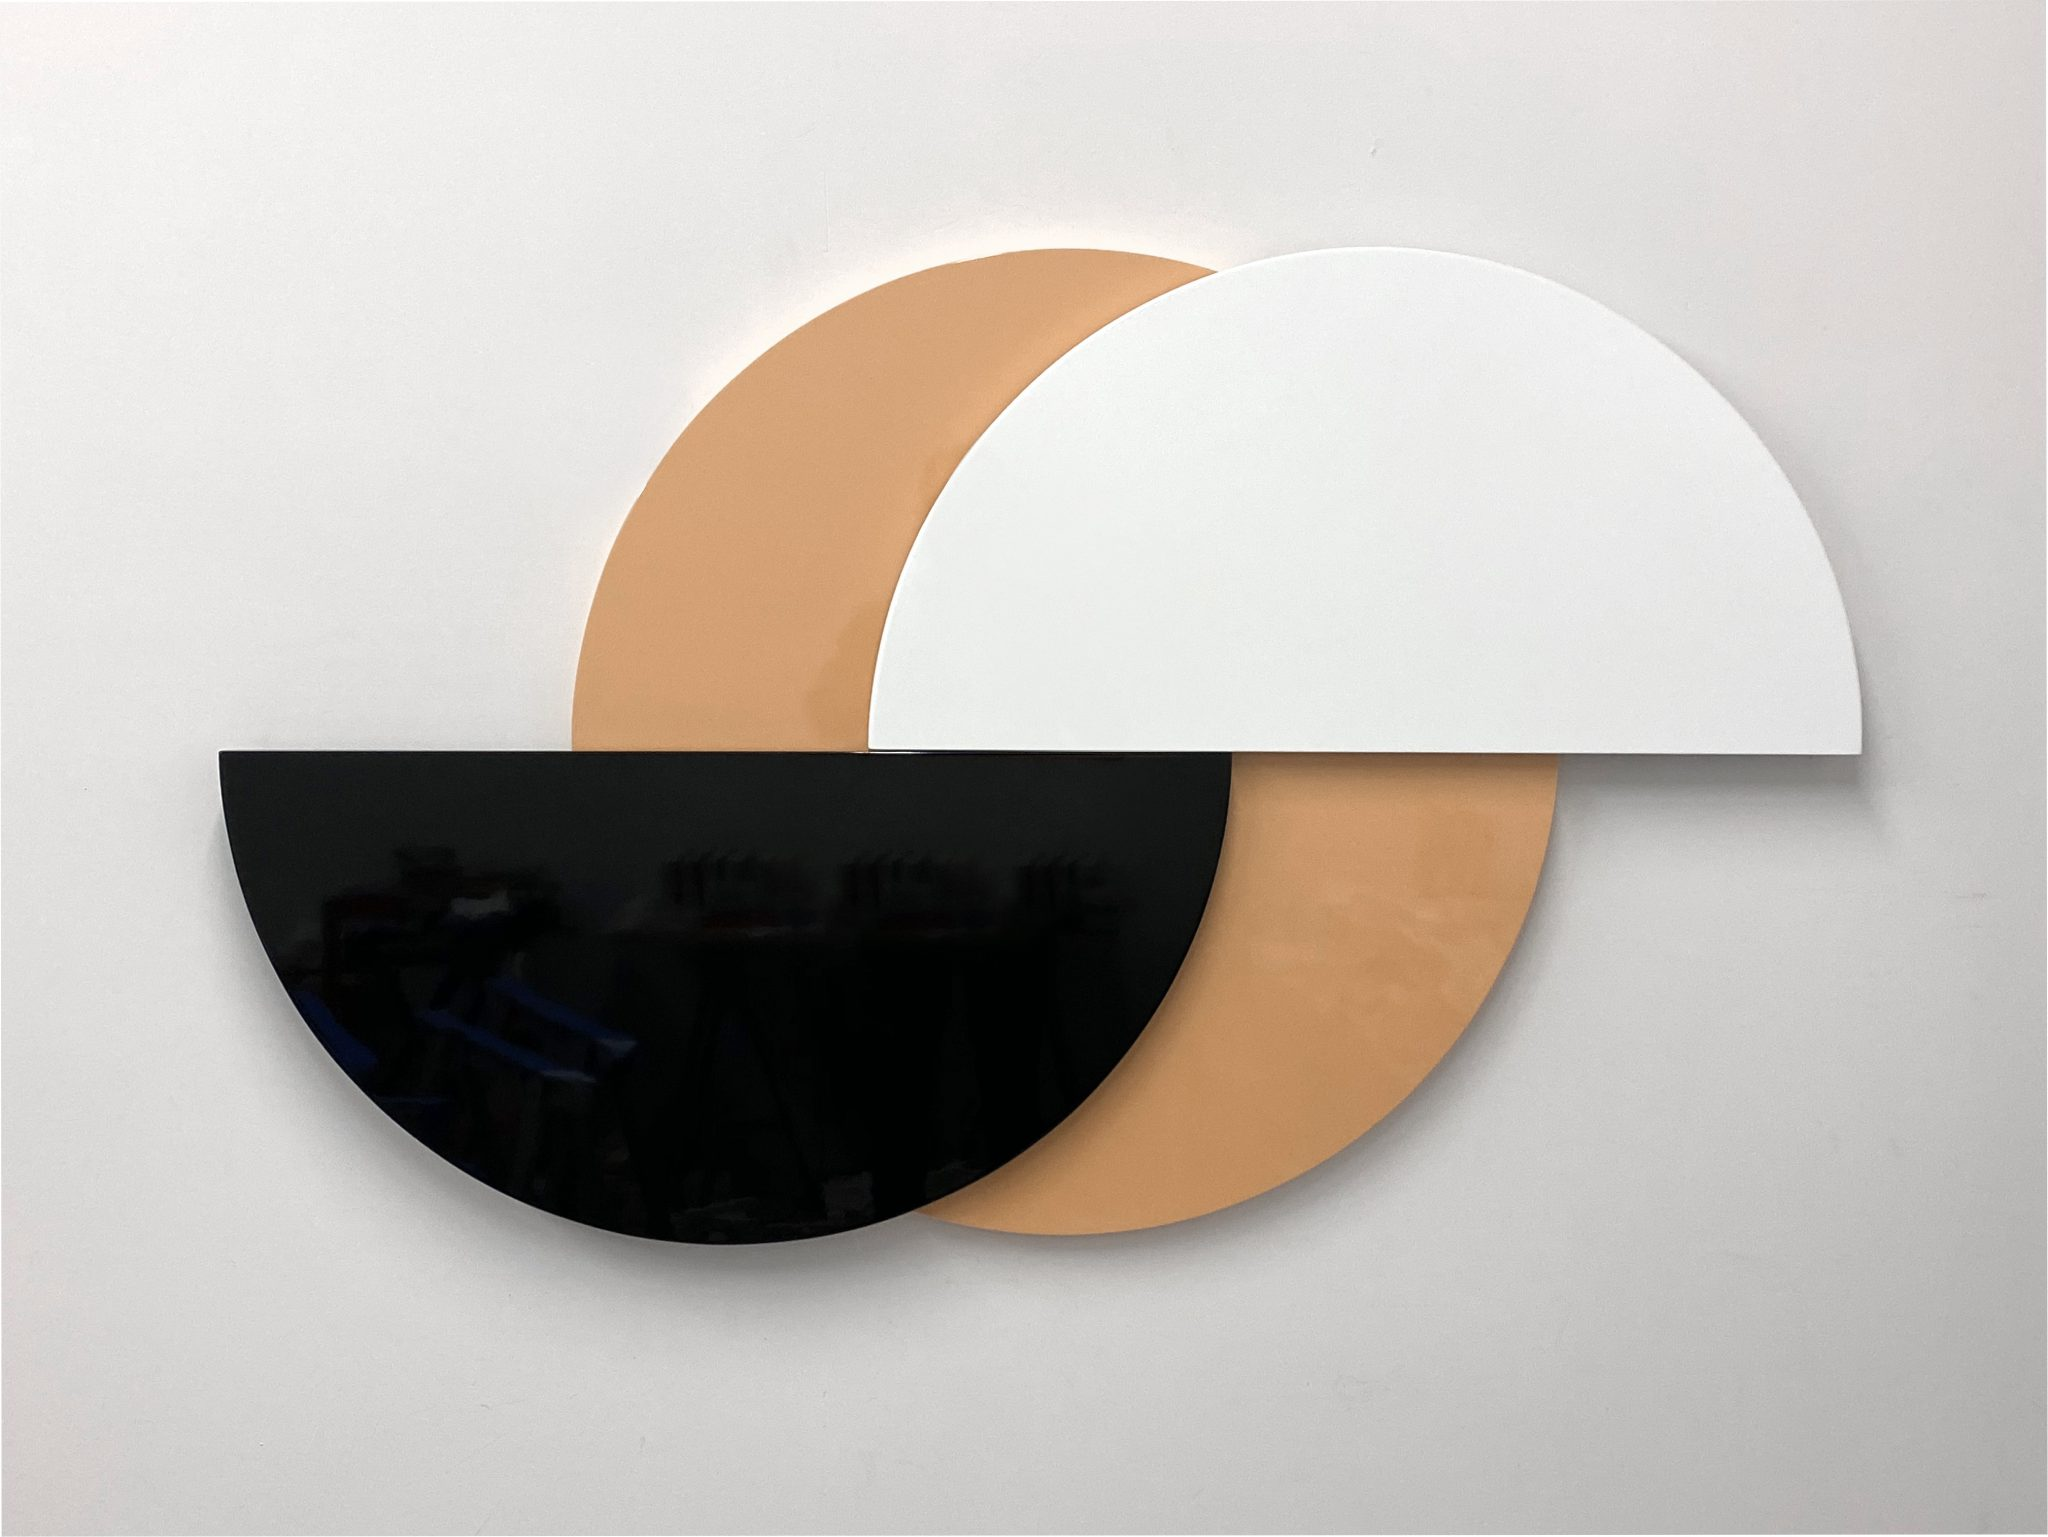 Half Moon (Desert), 3-part painted MDF and hardware, 88 x 11.5 x 5.7 cm